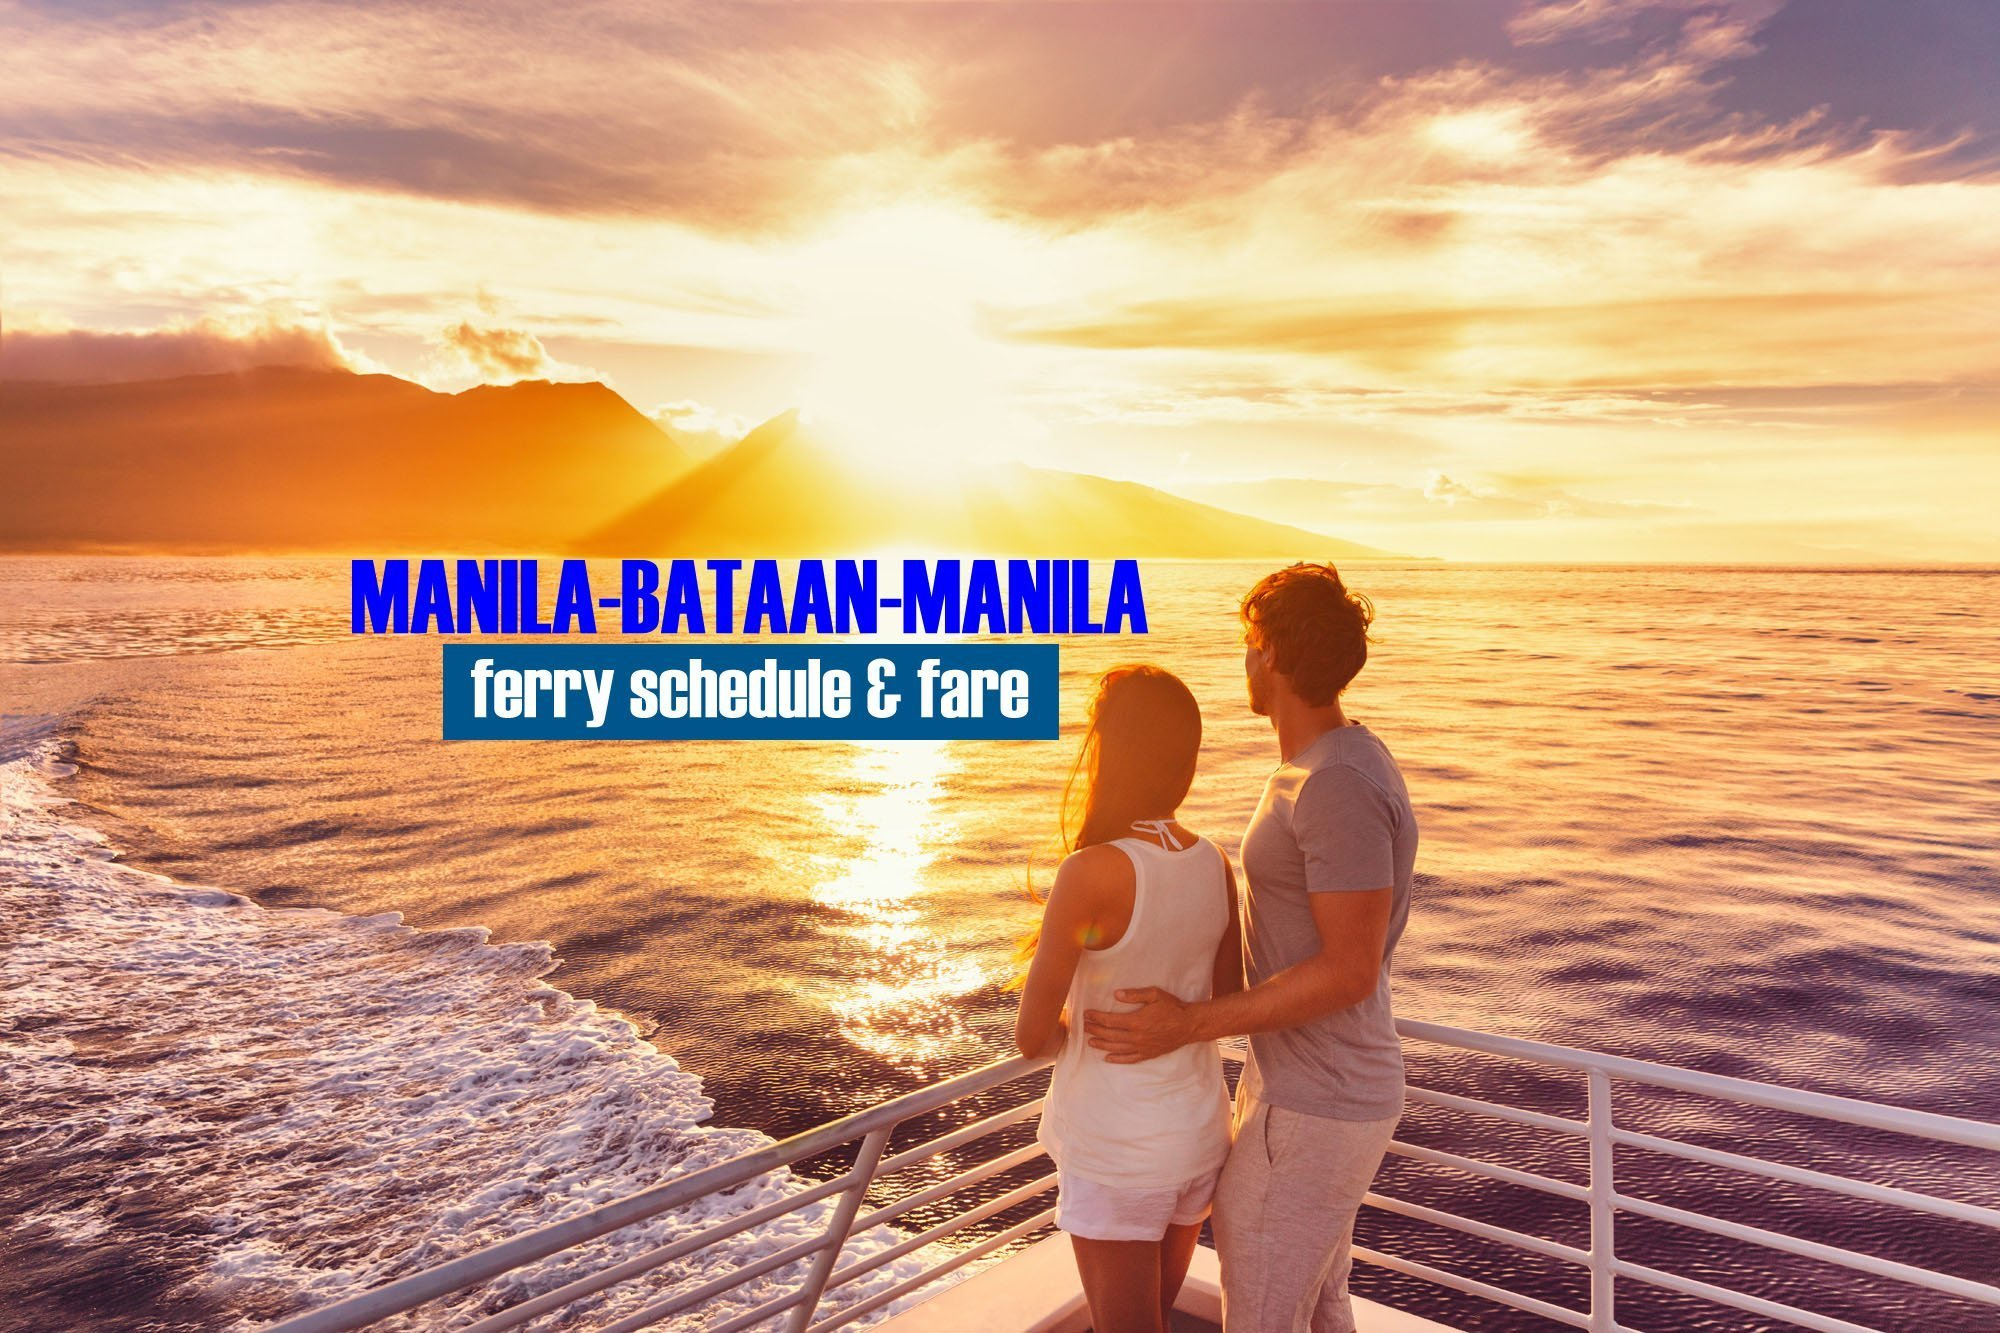 2020 Ferry Schedule: Manila to Bataan